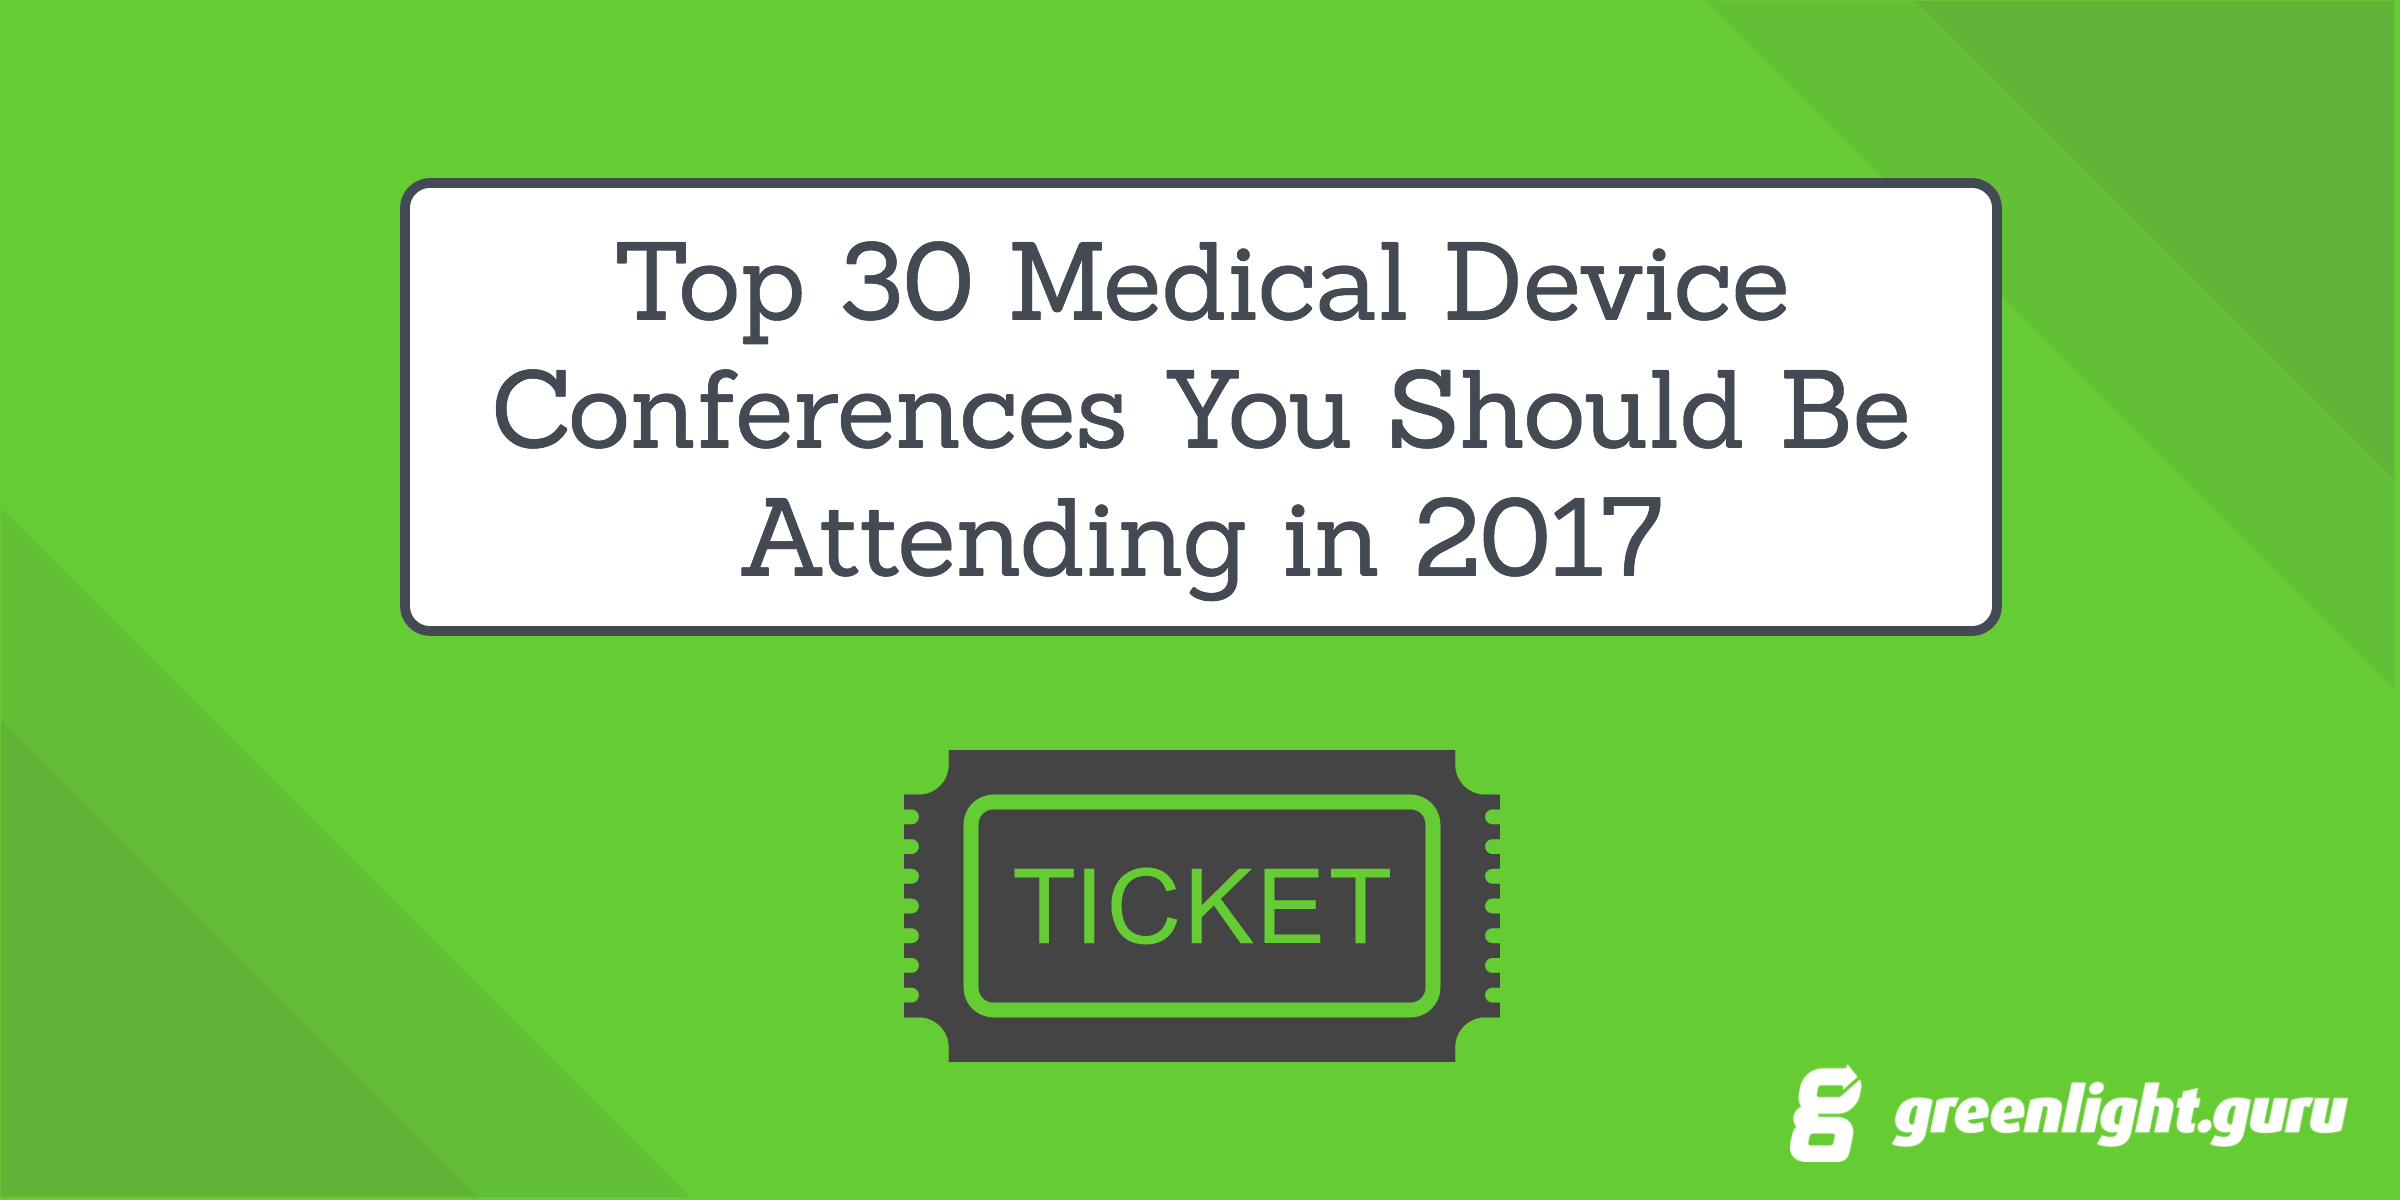 top_medical_device_conferences_2017.png